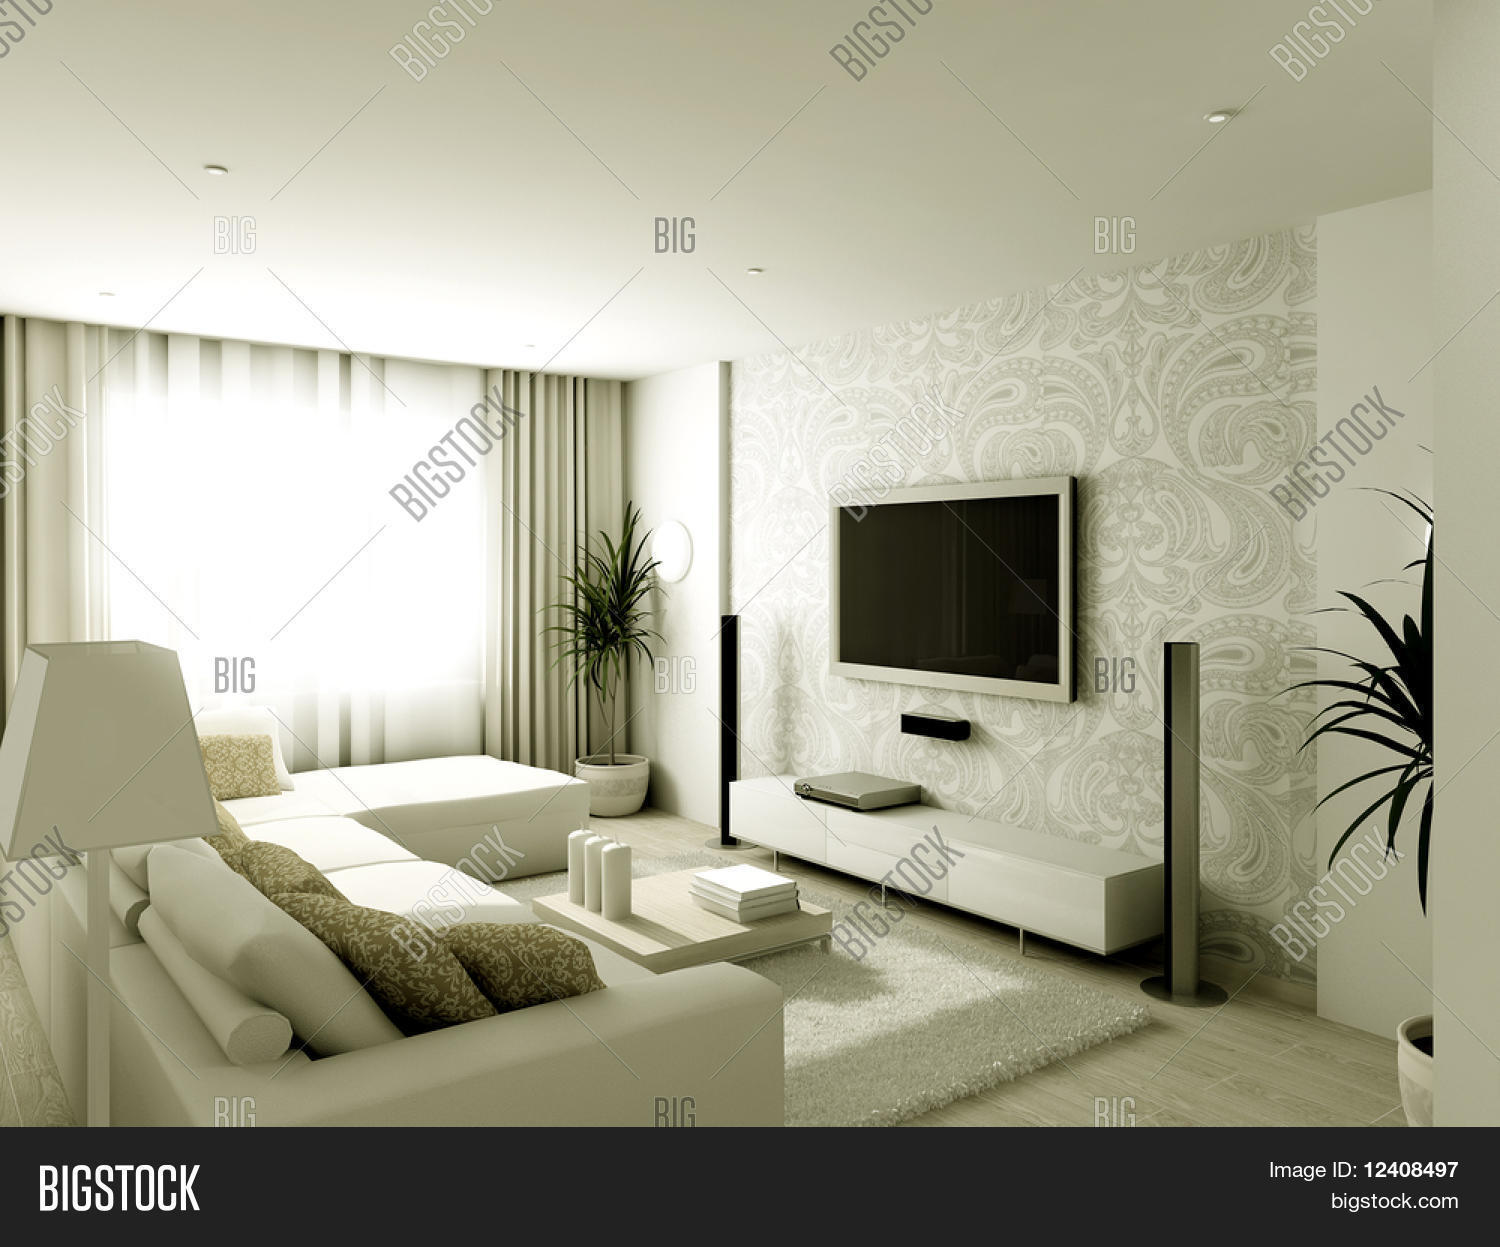 modern design interior living room image photo bigstock